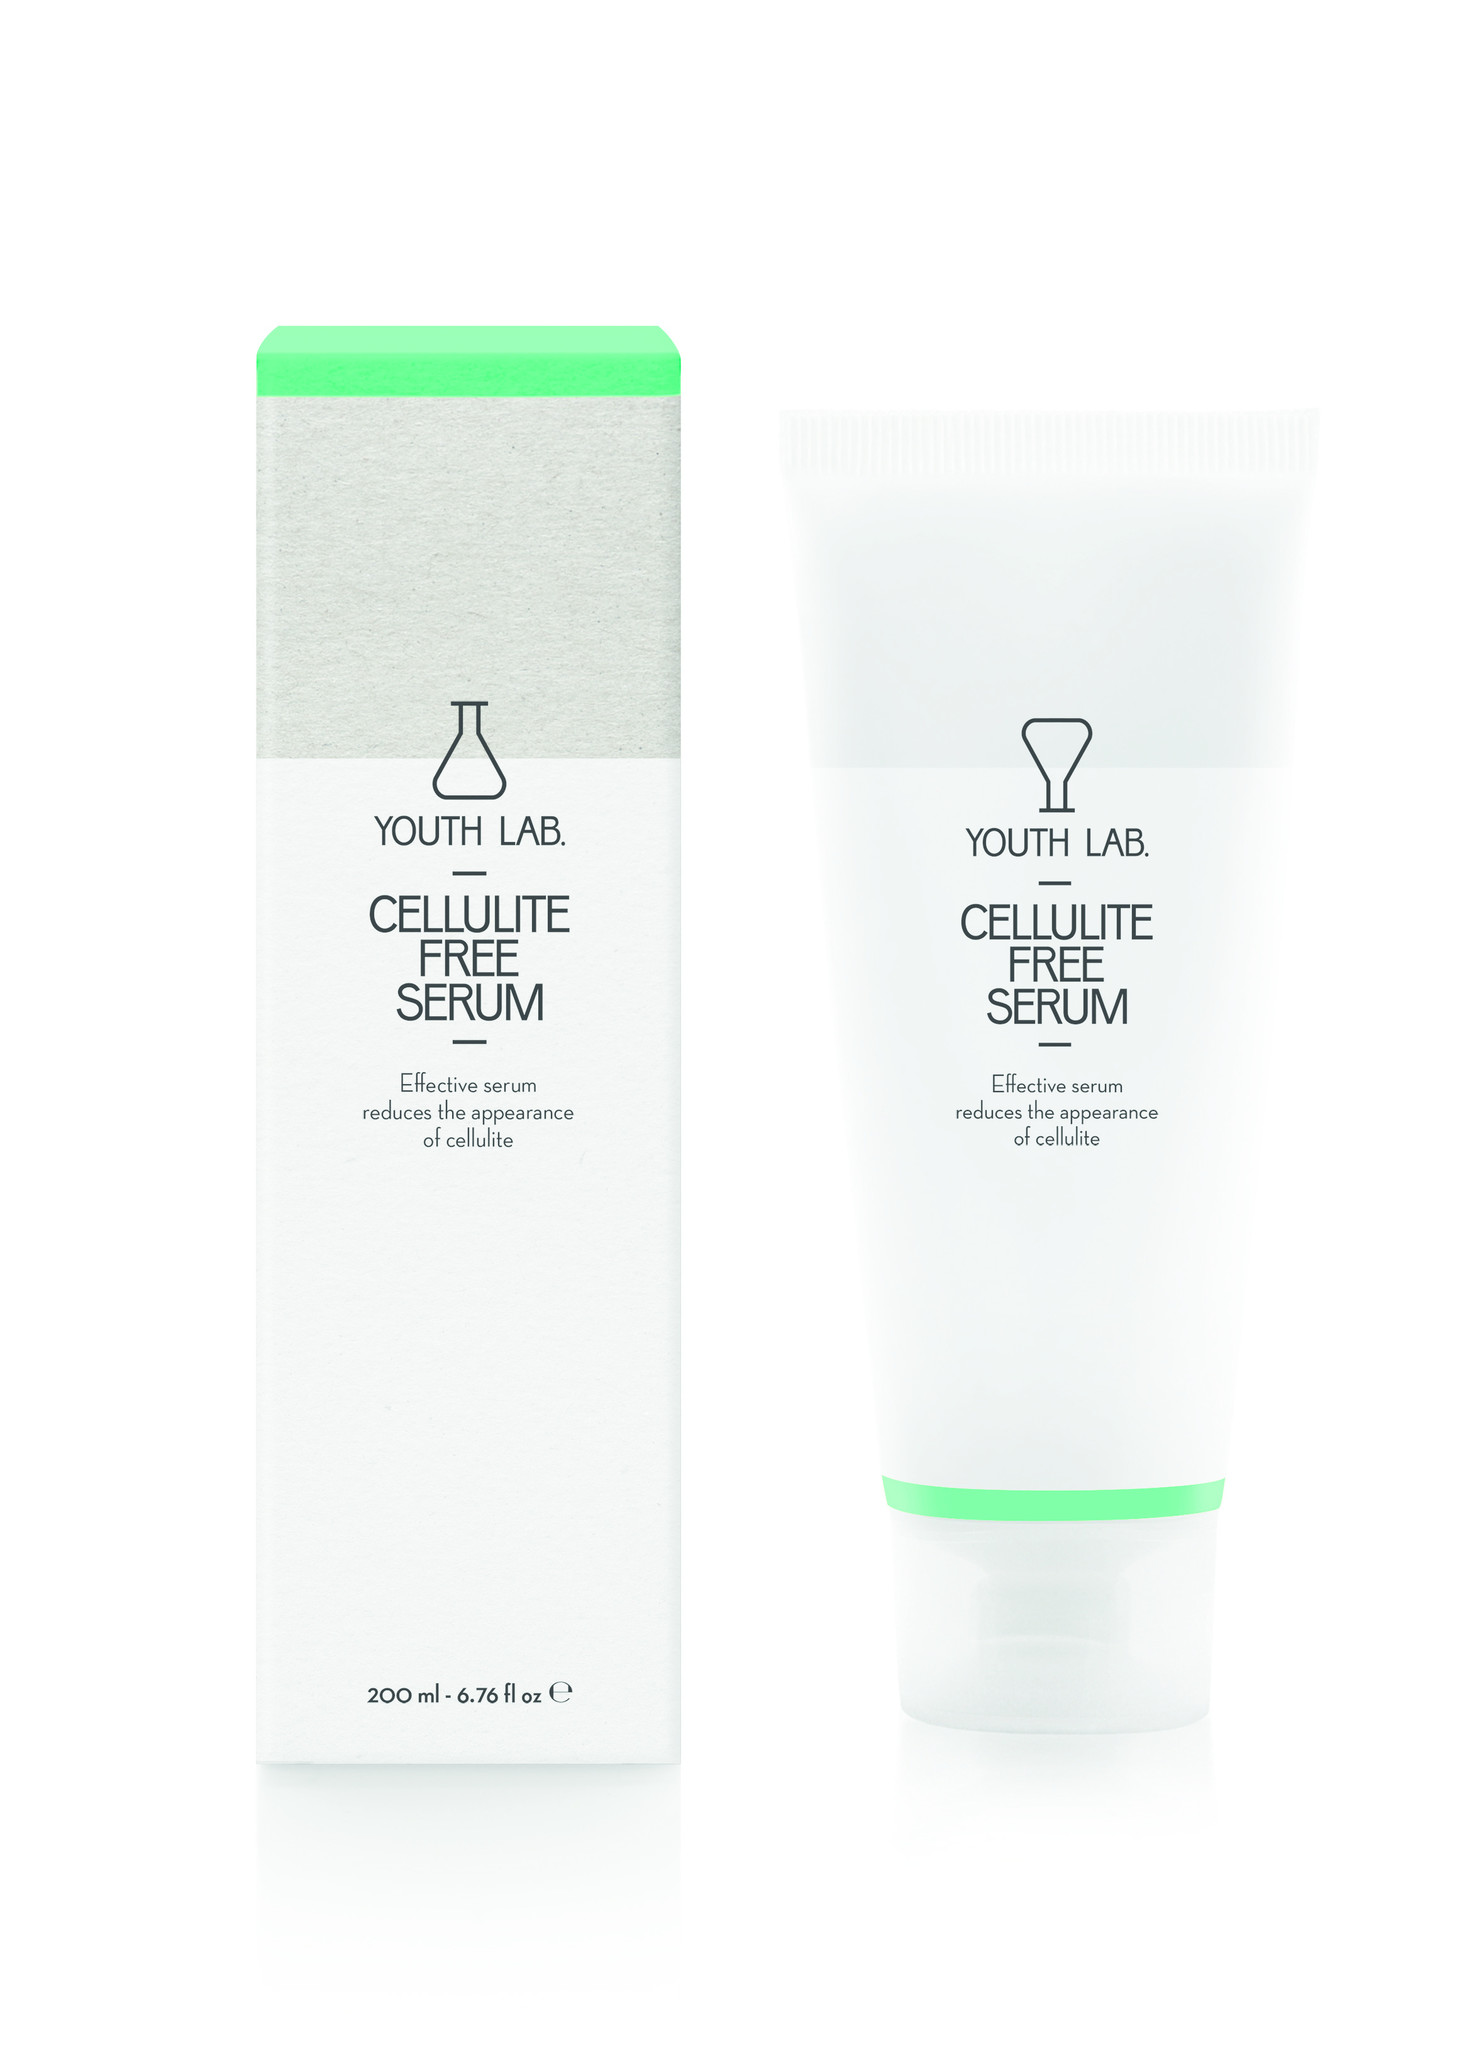 Youth Lab Youth lab Cellulite free serum 200ml